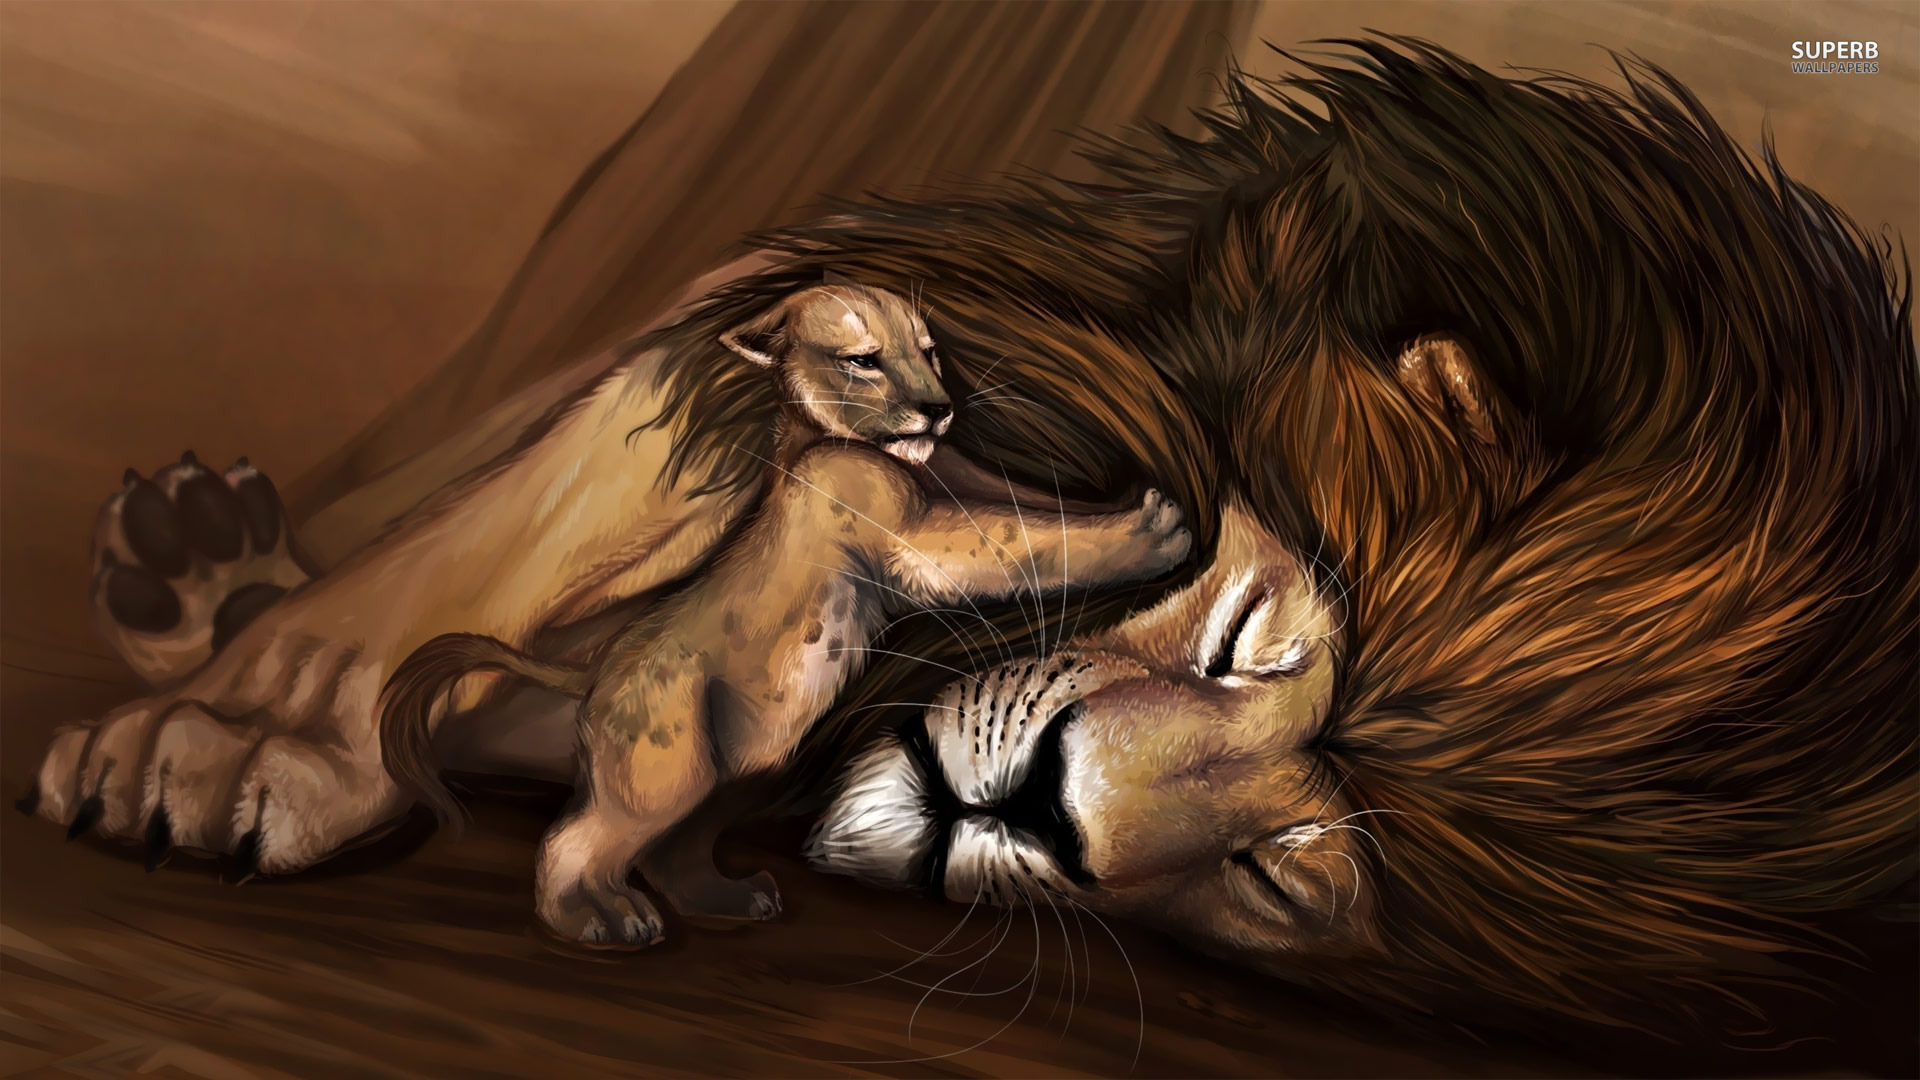 cub-waking-up-lion